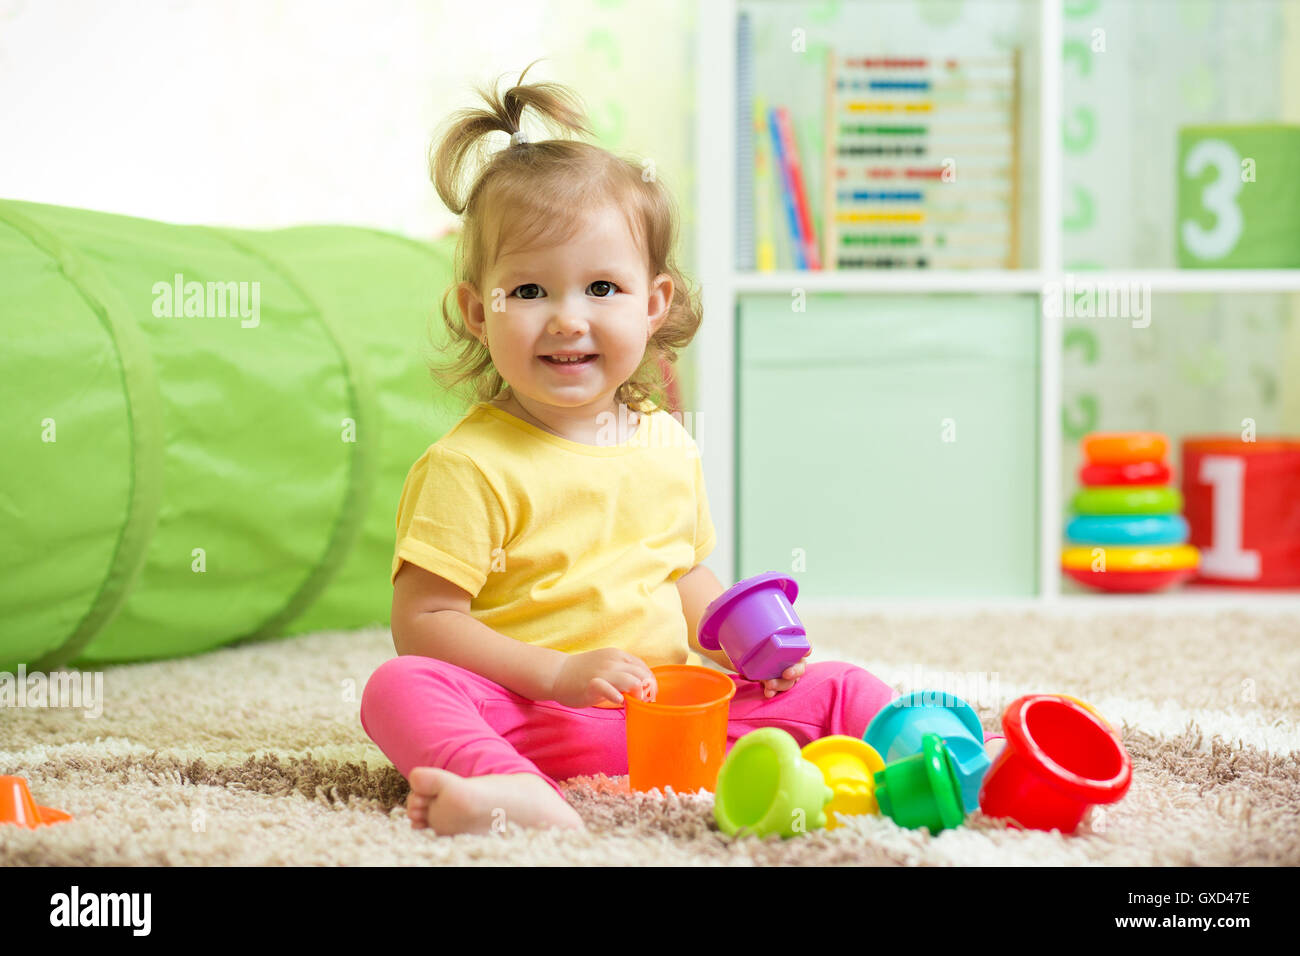 Cheerful kid toddler playing in nursery room - Stock Image